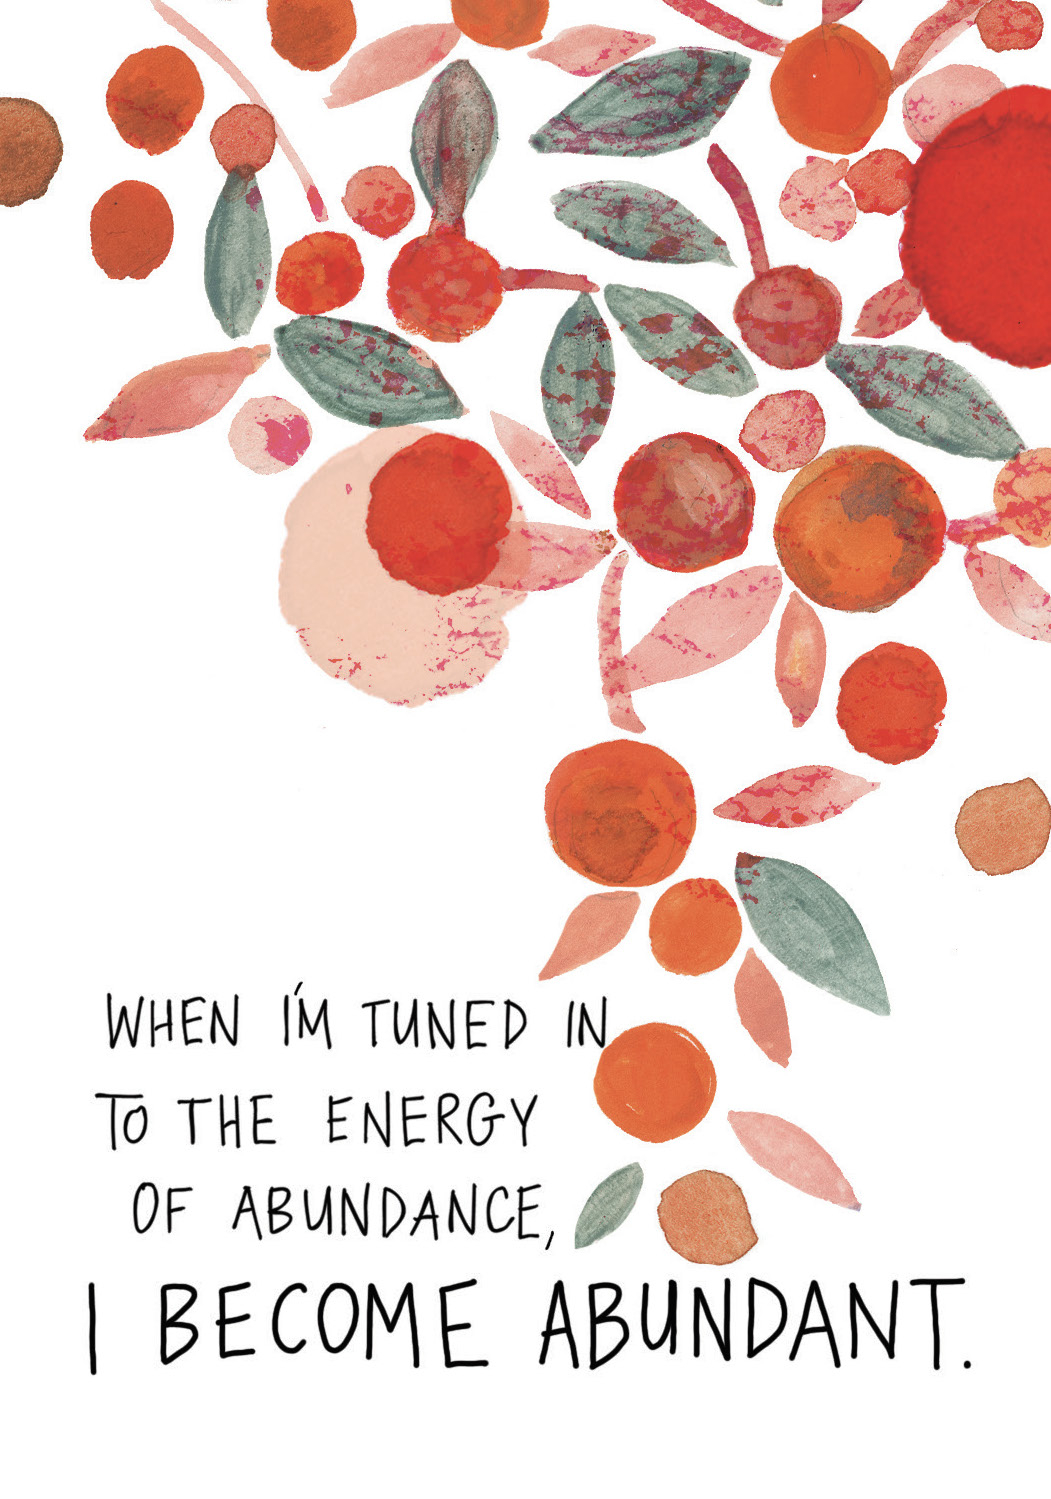 When I'm tuned in to the energy of abundance, I become abundant